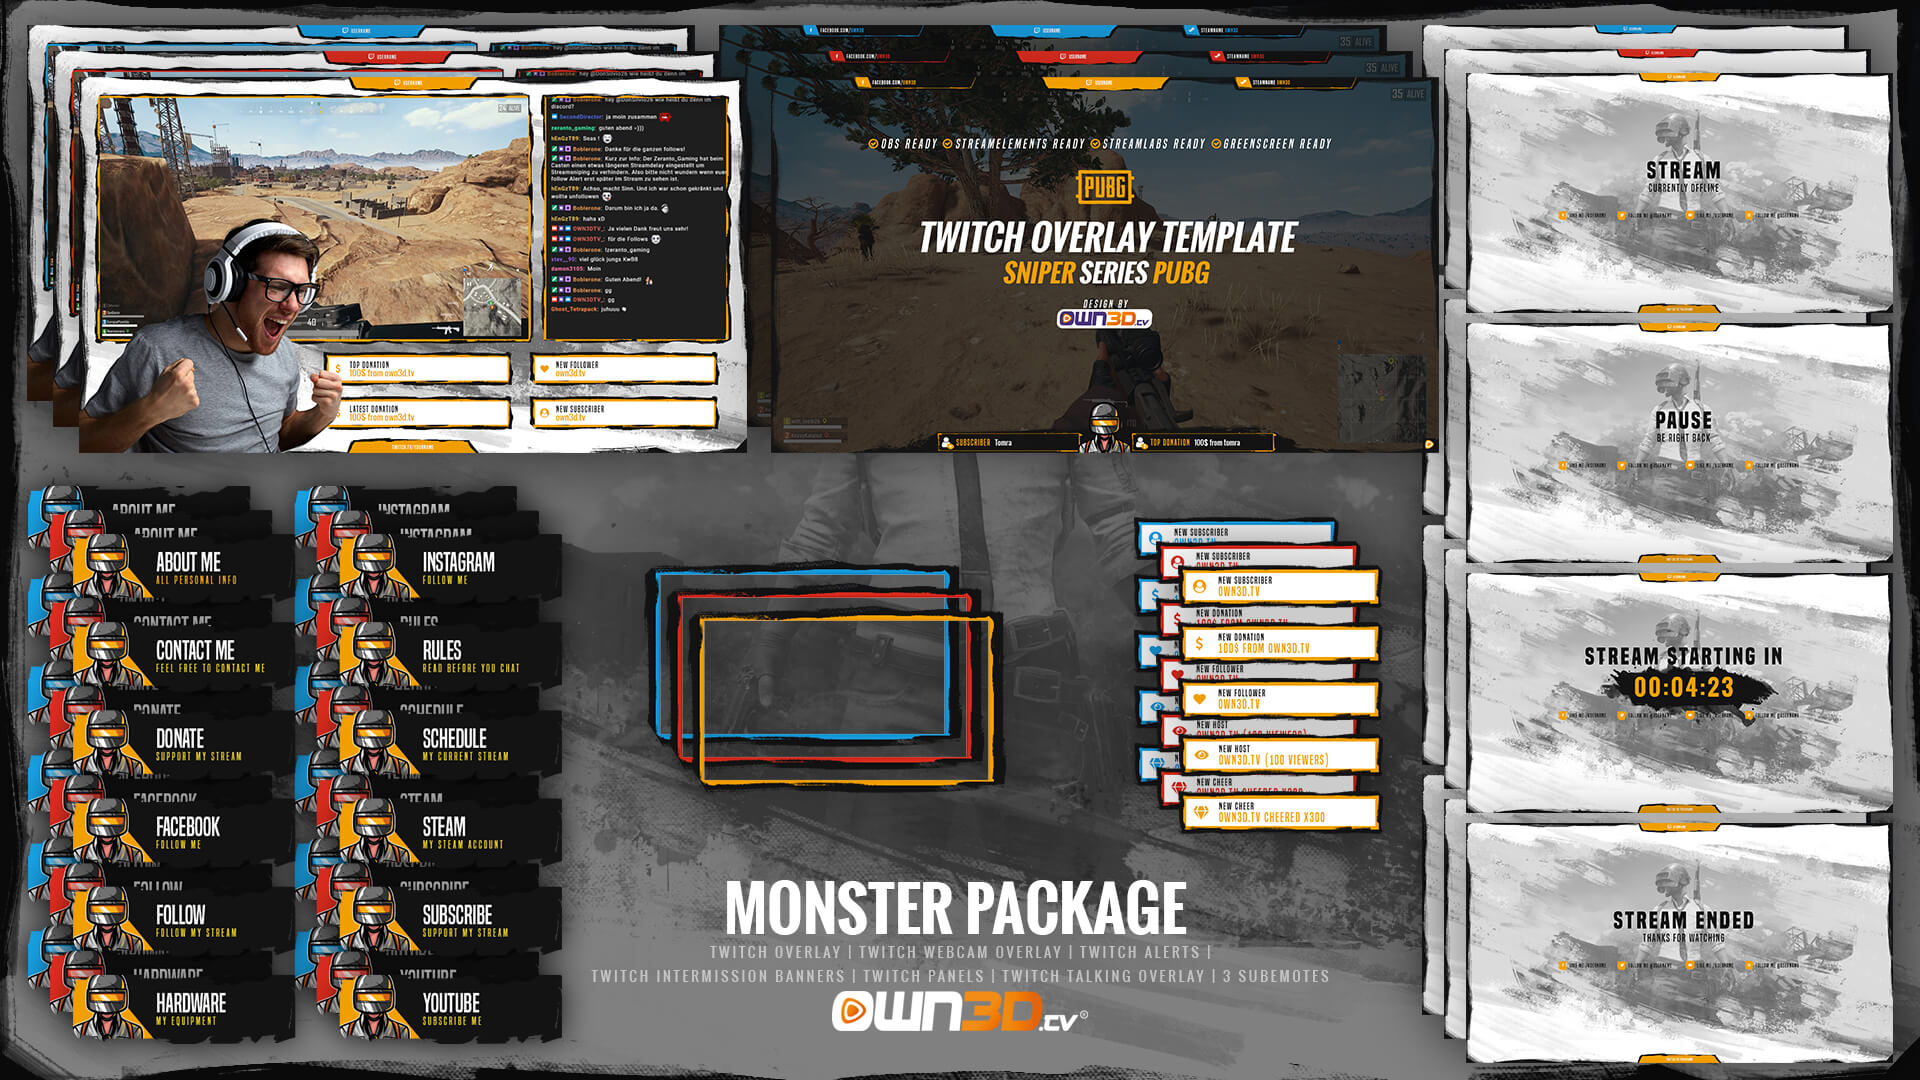 sniper-series-ALL-twitch-overlay-package-03-monster.jpg